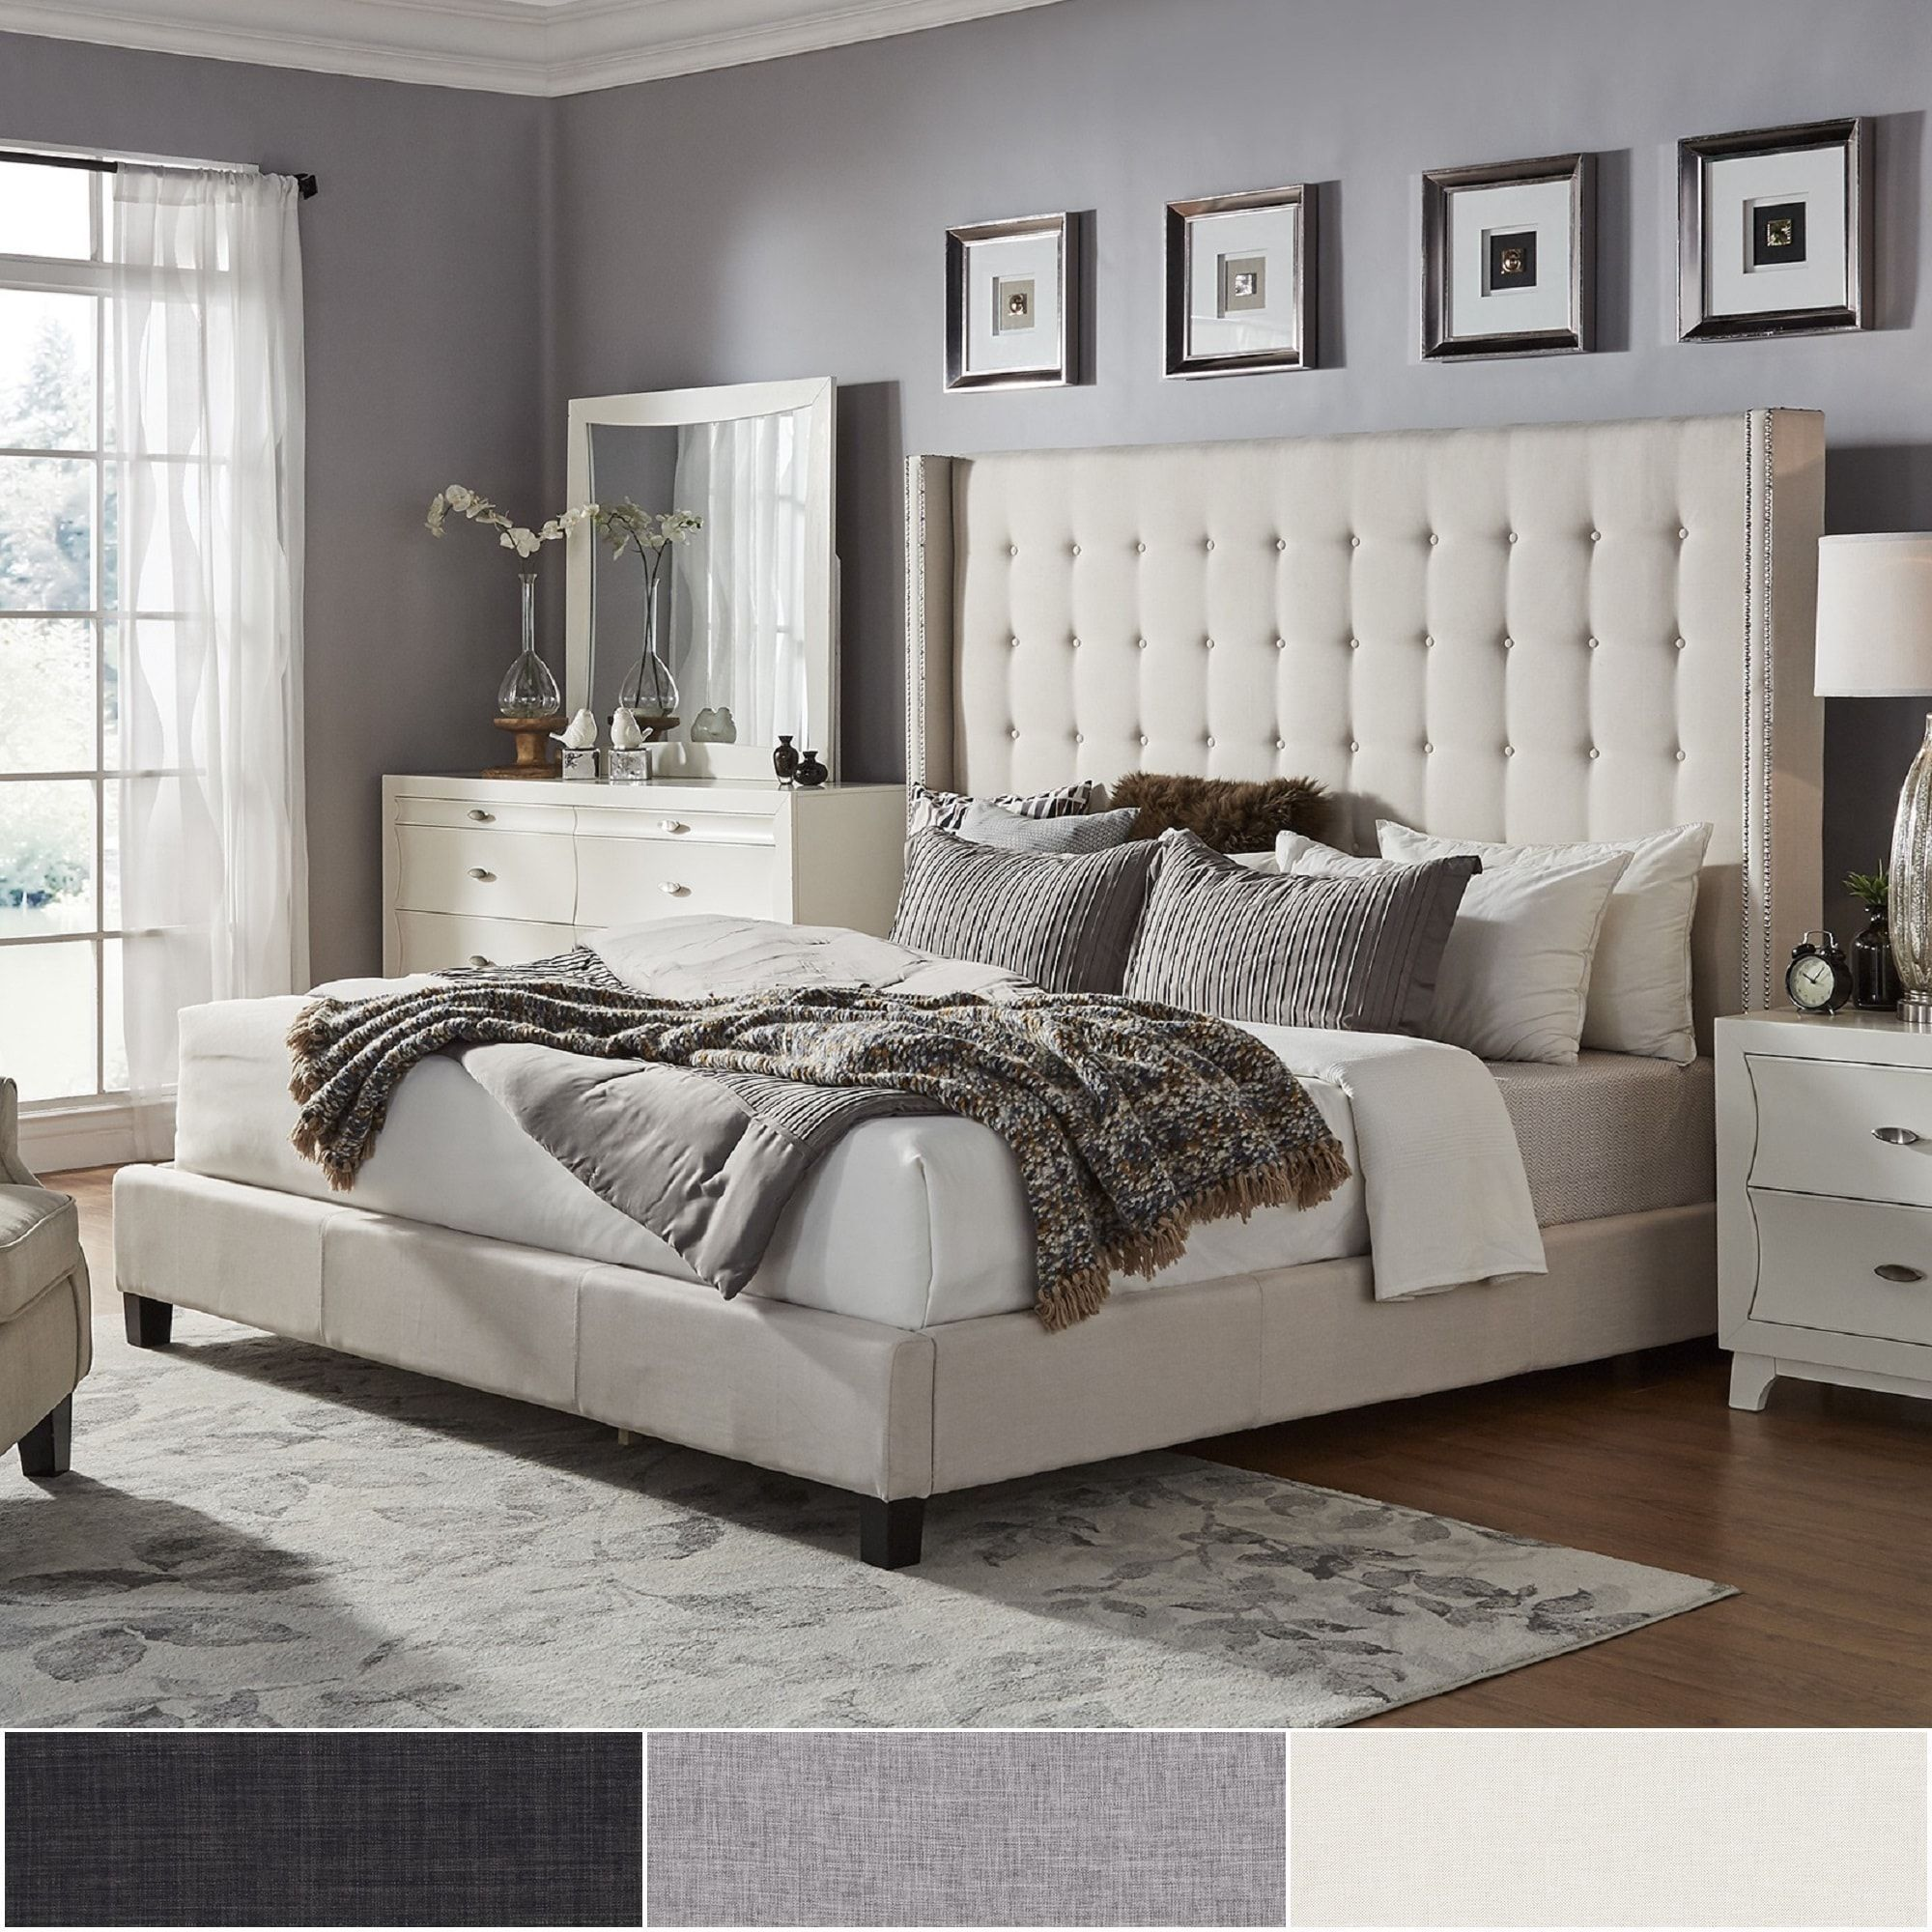 Marion Nailhead Wingback Tufted Tall Headboard Platform Bed by iNSPIRE Q  Bold